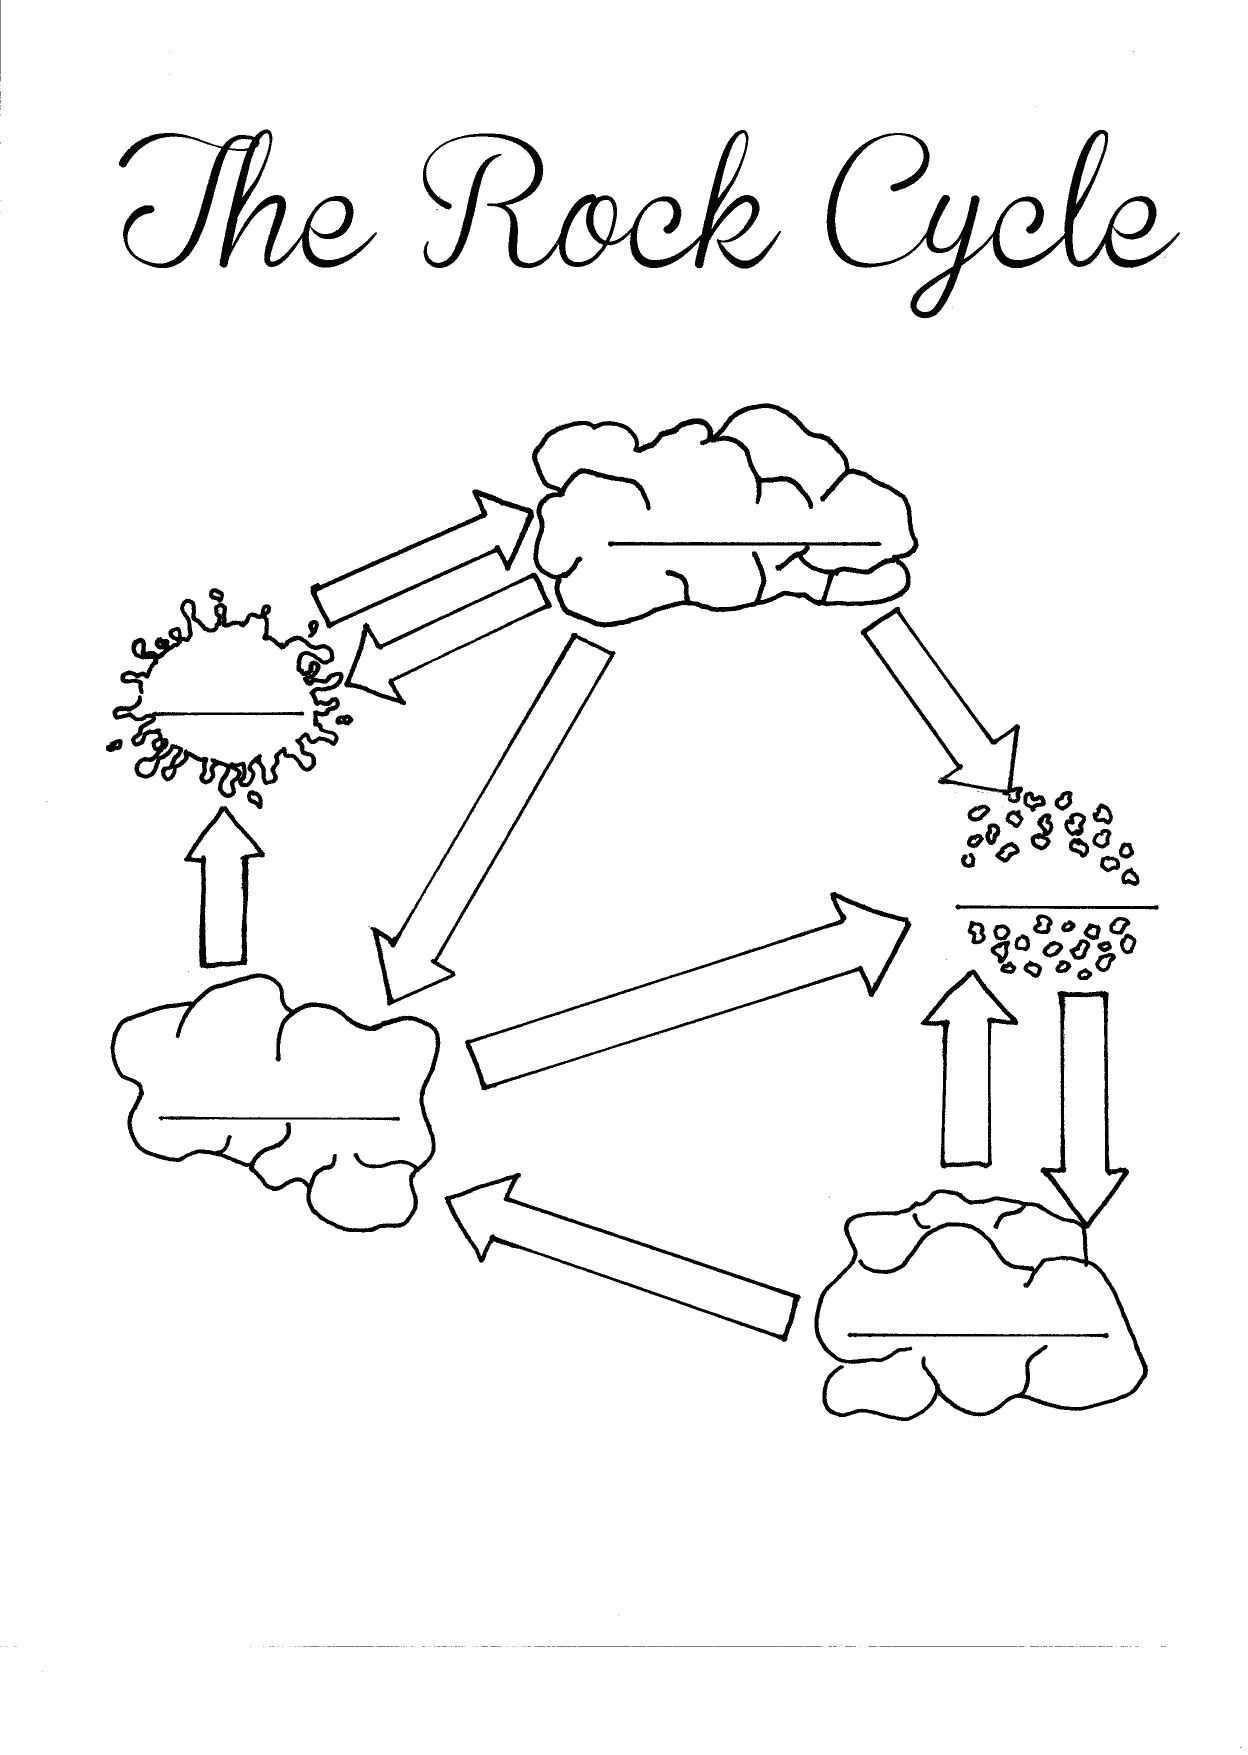 Worksheets Rock Cycle Worksheets the rock cycle blank worksheet fill in as you talk about or go through using crayons